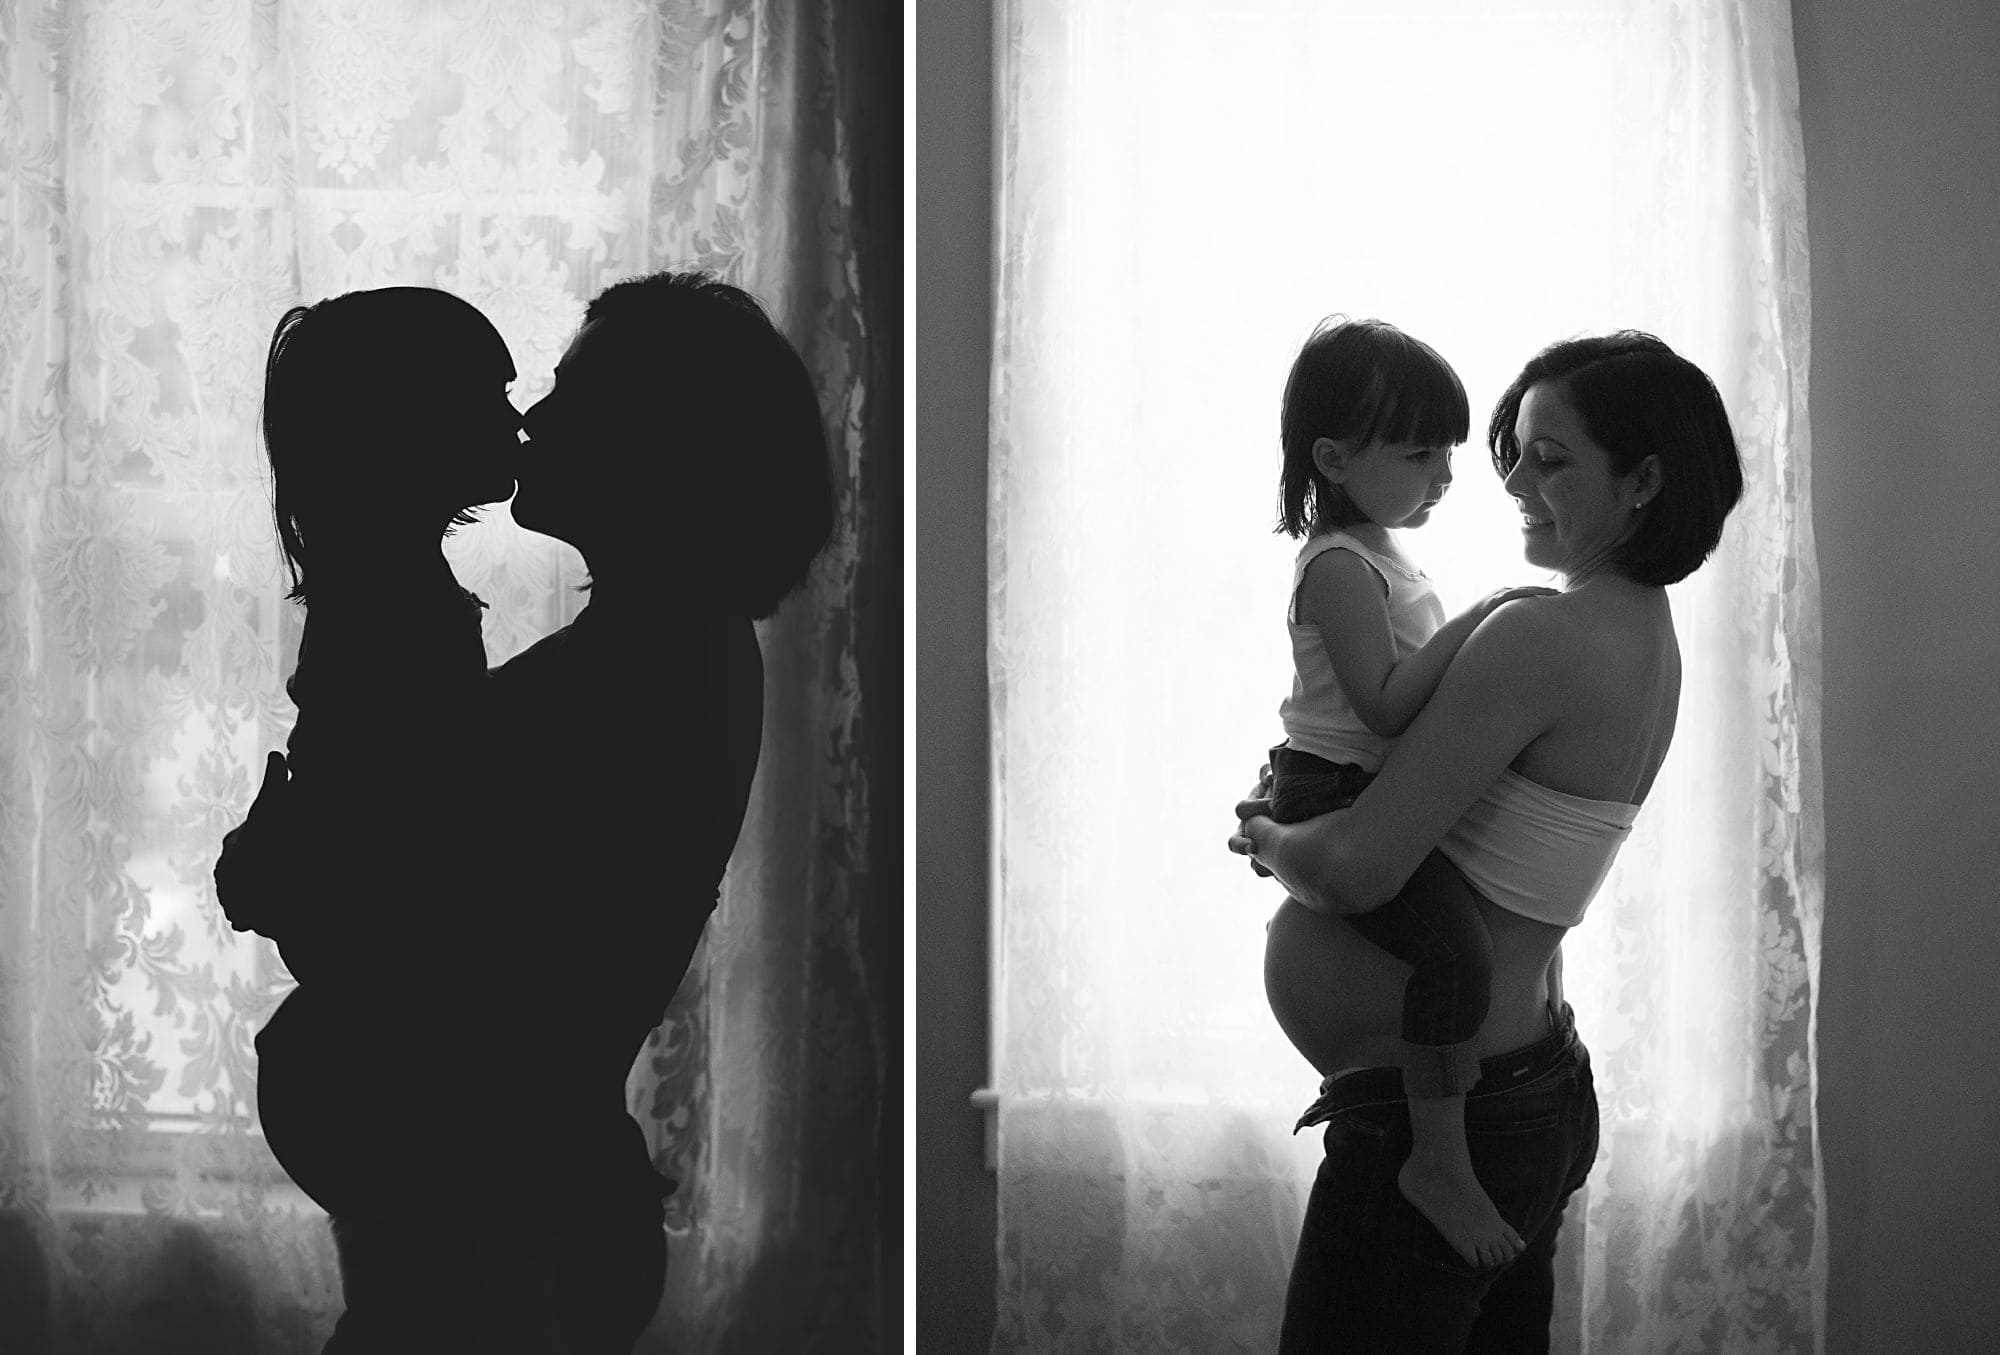 Pregnant mother and older child maternity picture in front of a window in black and white with a silhouette